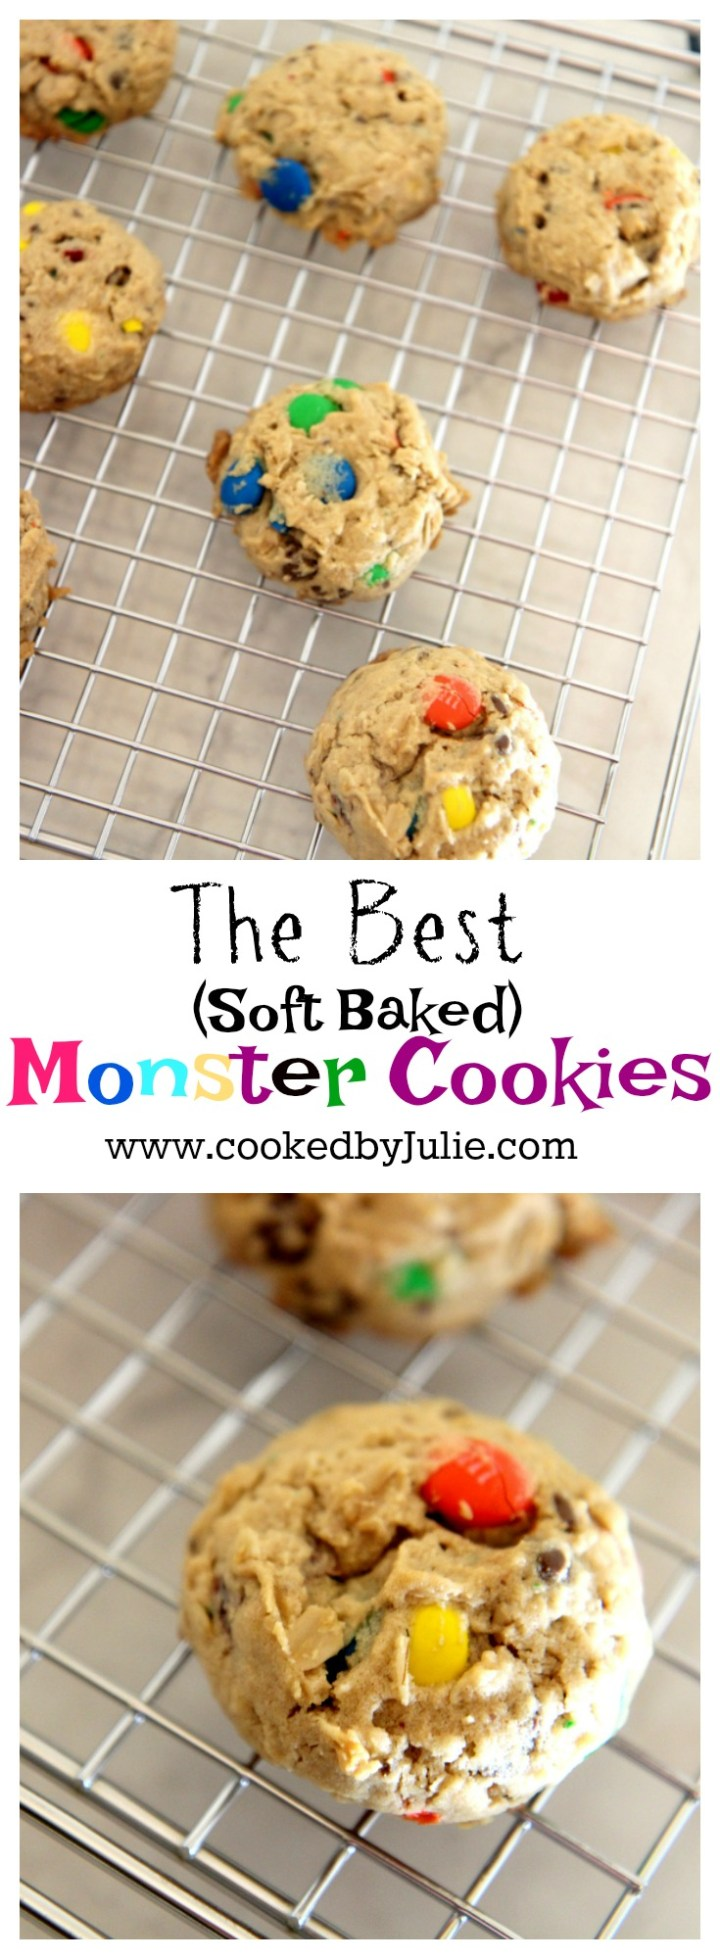 The Best Soft Baked Monster Cookie Recipe from Cooked By Julie